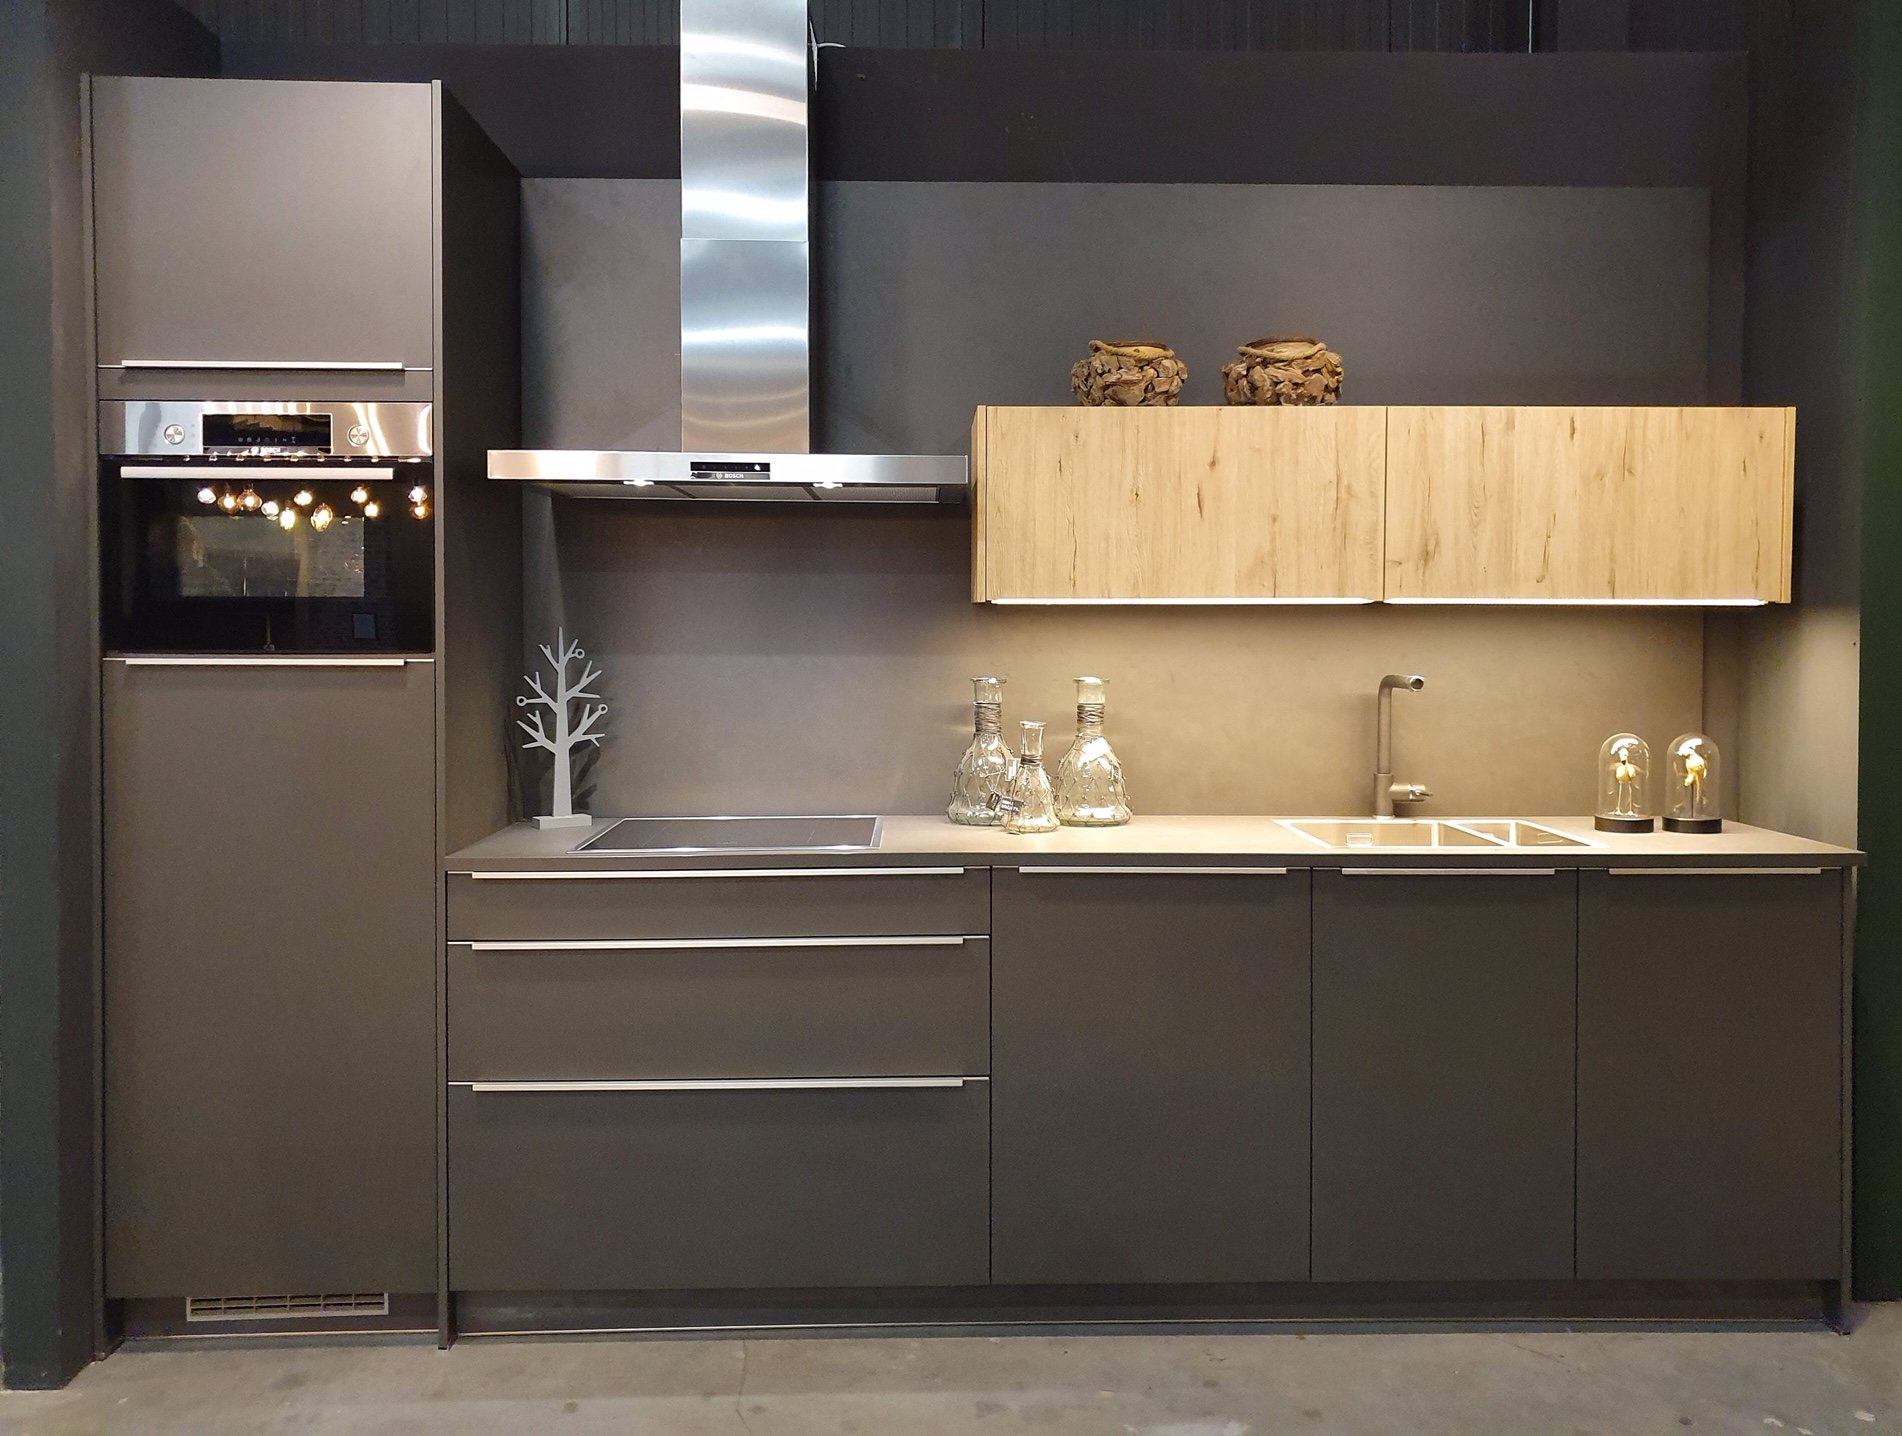 Over Ons 24 7 Kitchen